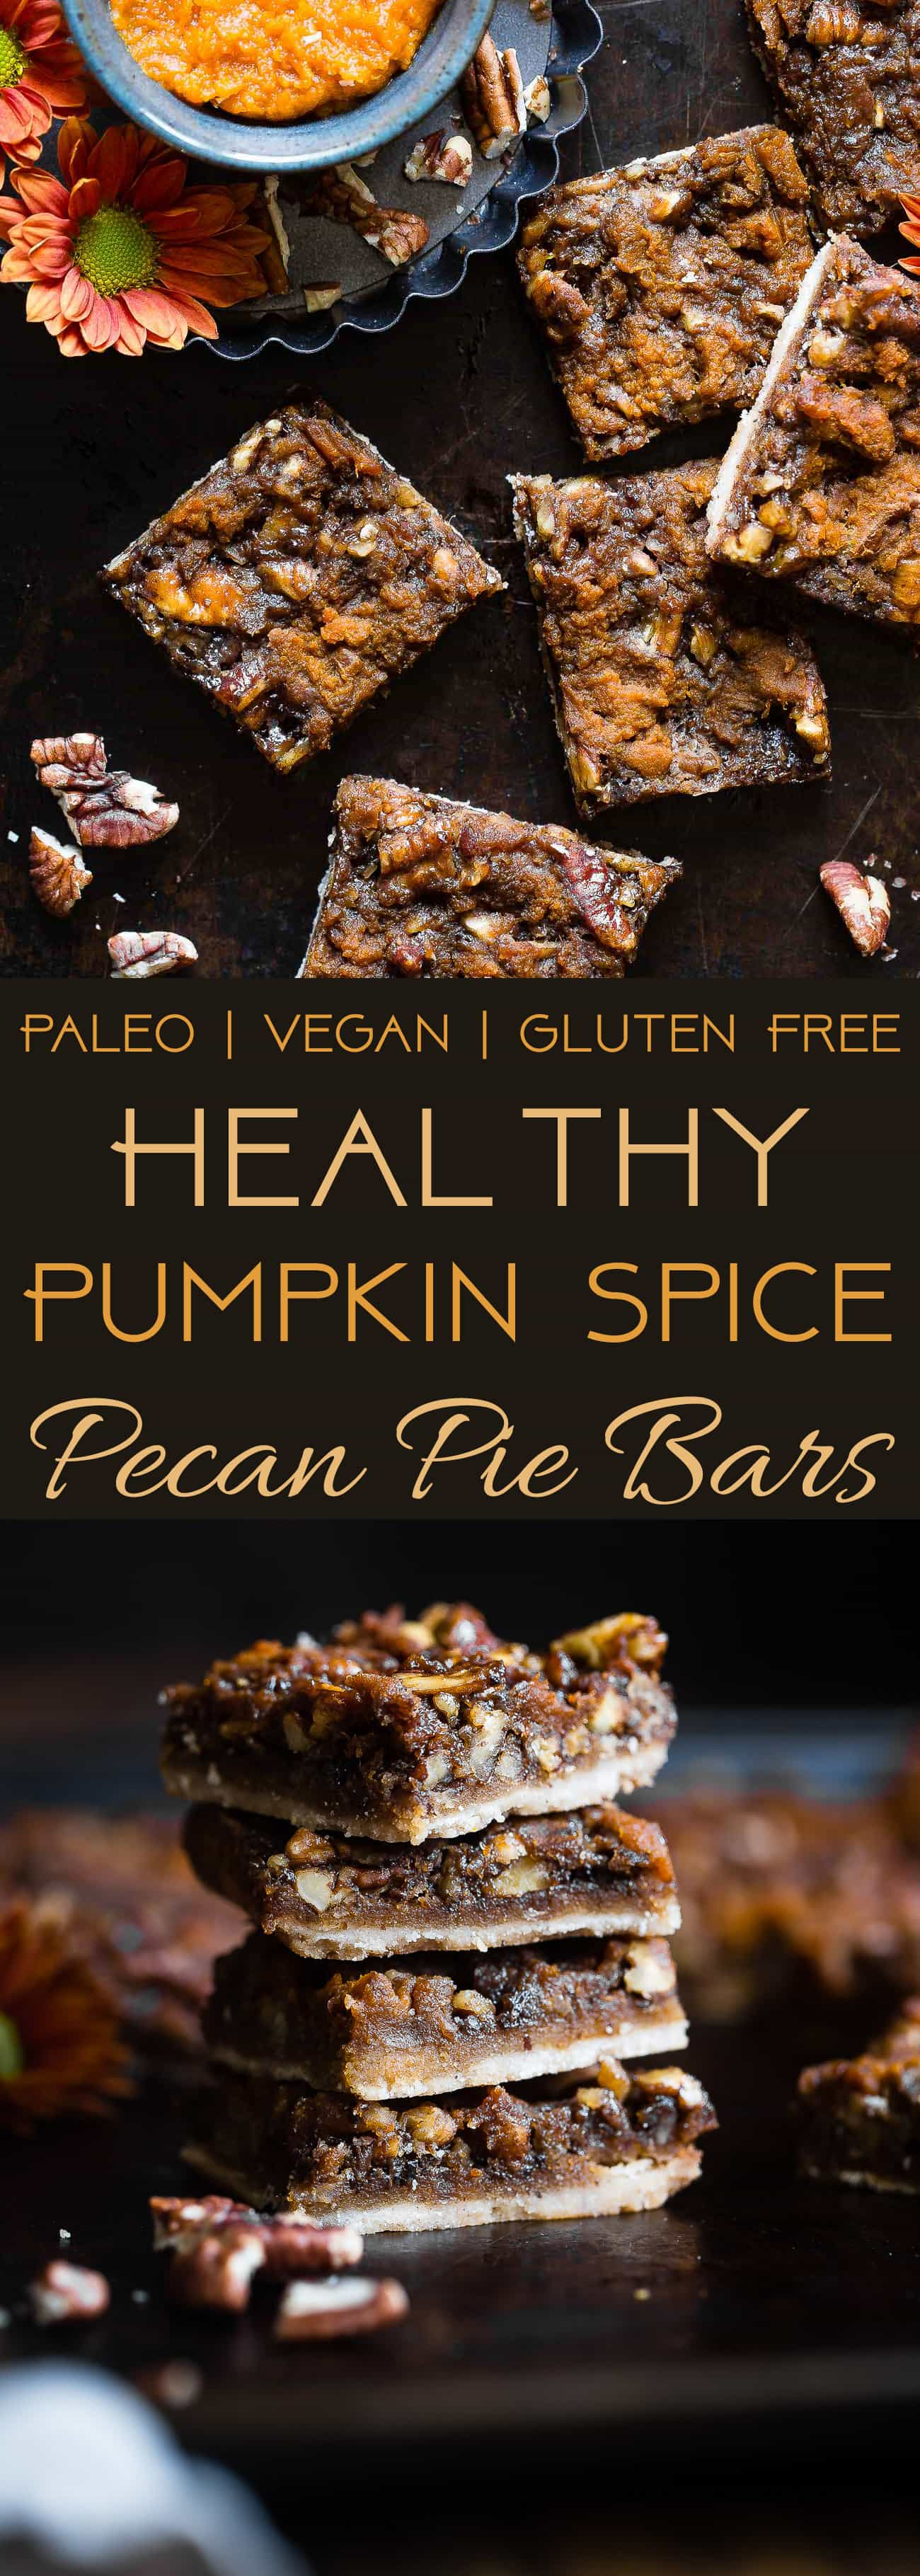 Pumpkin Spice Vegan Pecan Pie Bars - These easy, healthy pecan pie bars are only 8 ingredients and have a pumpkin spice spin! A gluten/grain/dairy/egg free dessert for Thanksgiving that's paleo friendly! | Foodfaithfitness.com | @FoodFaithFit | easy pecan pie bars. pecan pie bars no corn syrup. best pecan pie bars. healthy pecan pie bars. paleo pecan pie bars. gluten free pecan pie bars. pumpkin pecan pie bars. maple pecan pie bars. chewy pecan pie bars.